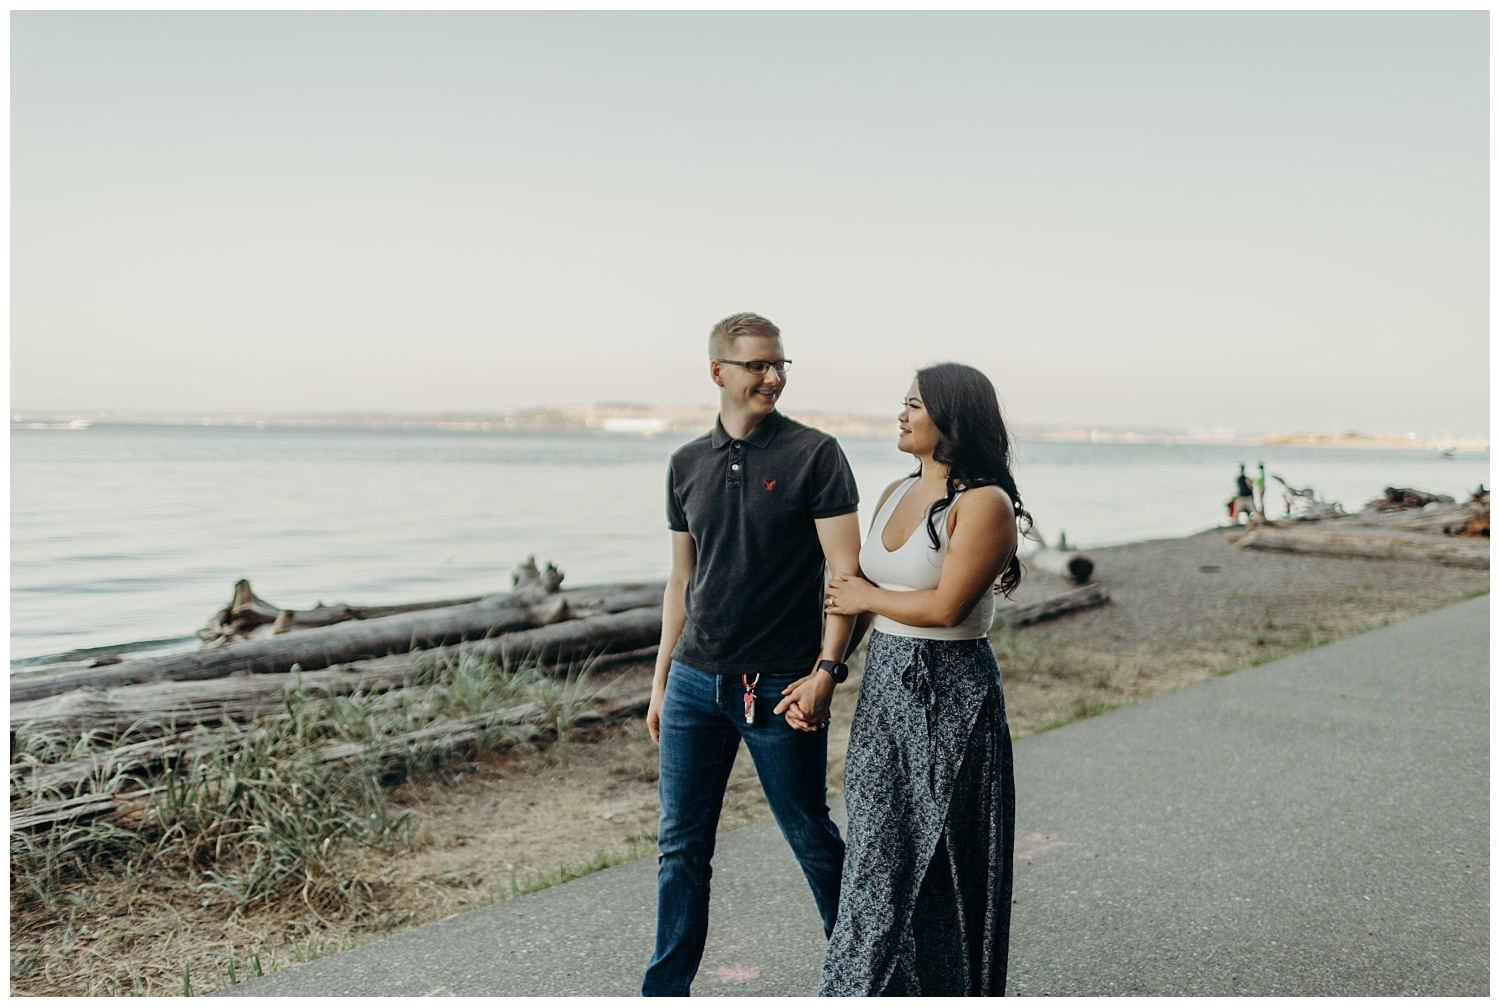 Jaynah and Kevin Point Defiance Rose Garden Owen Beach Tacoma Washington Engagement Session (25).jpg